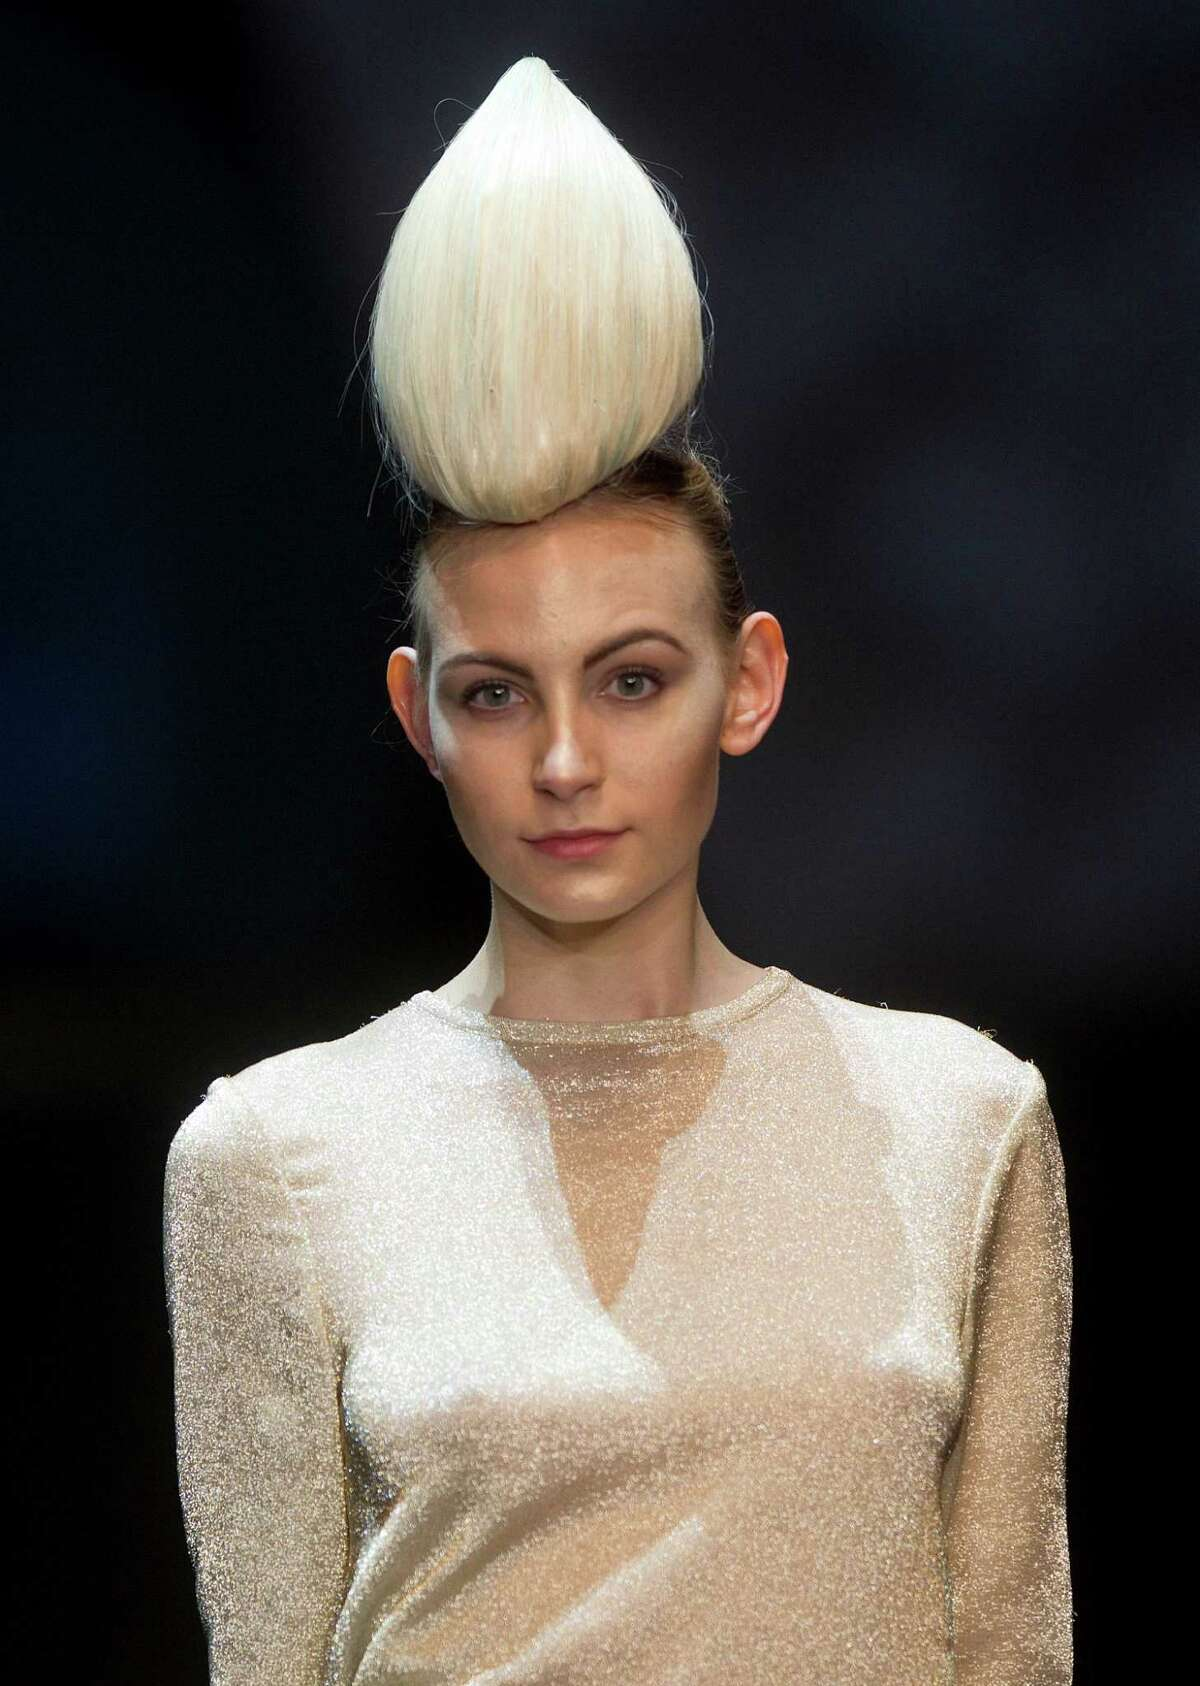 A model displays a creation by hair stylist Julio Crepaldi, during the Hair Fashion Show in Sao Paulo, Brazil, Thursday, Aug. 30, 2012.